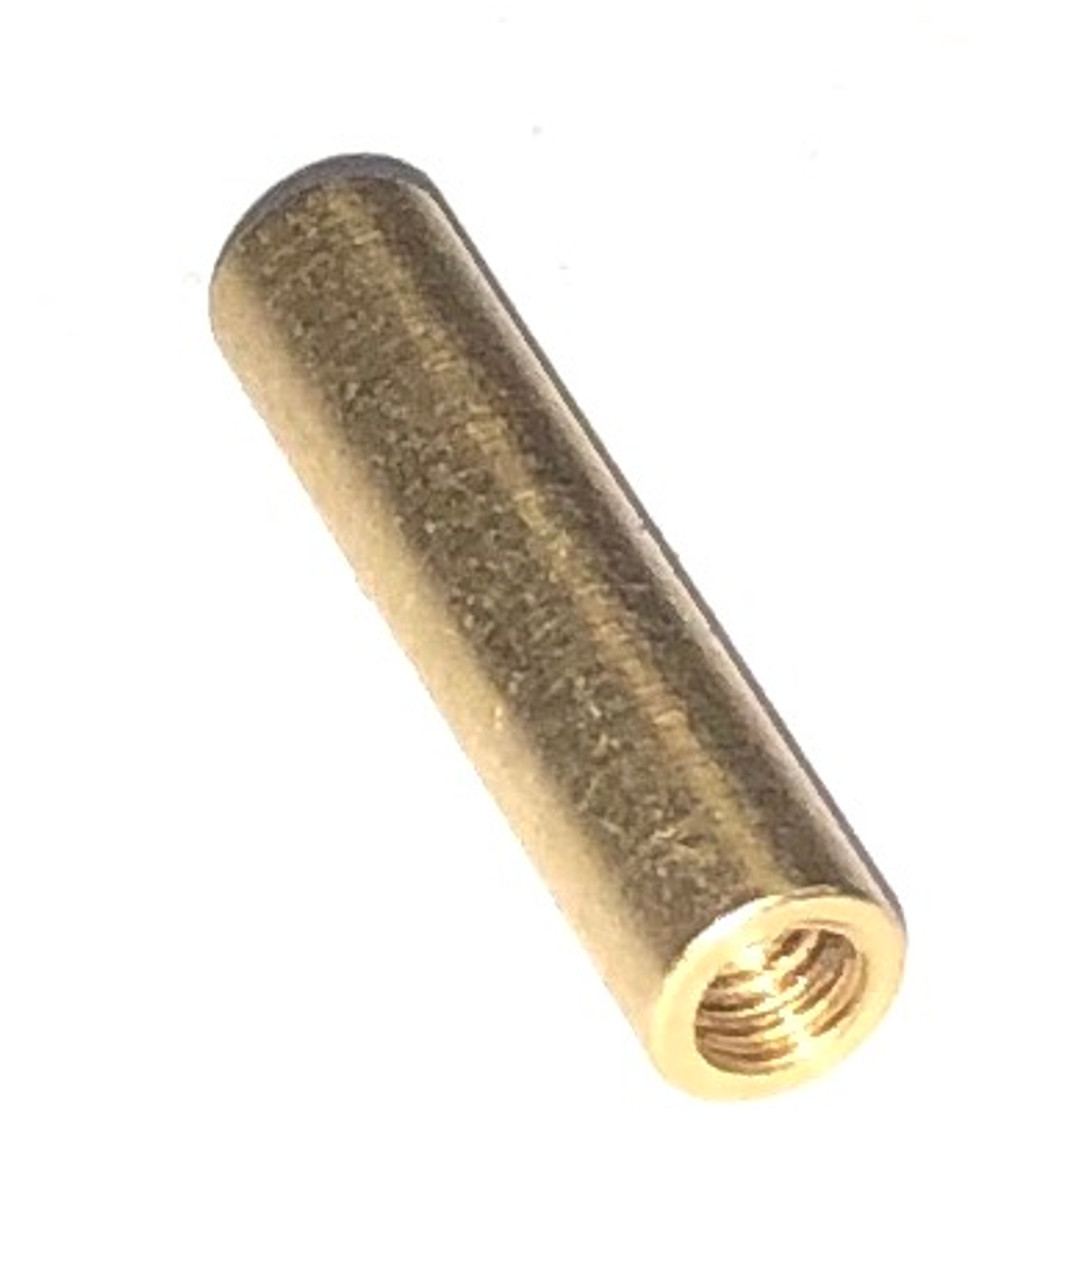 Metric M4 to English 8-32 Cleaning Rod Adapter